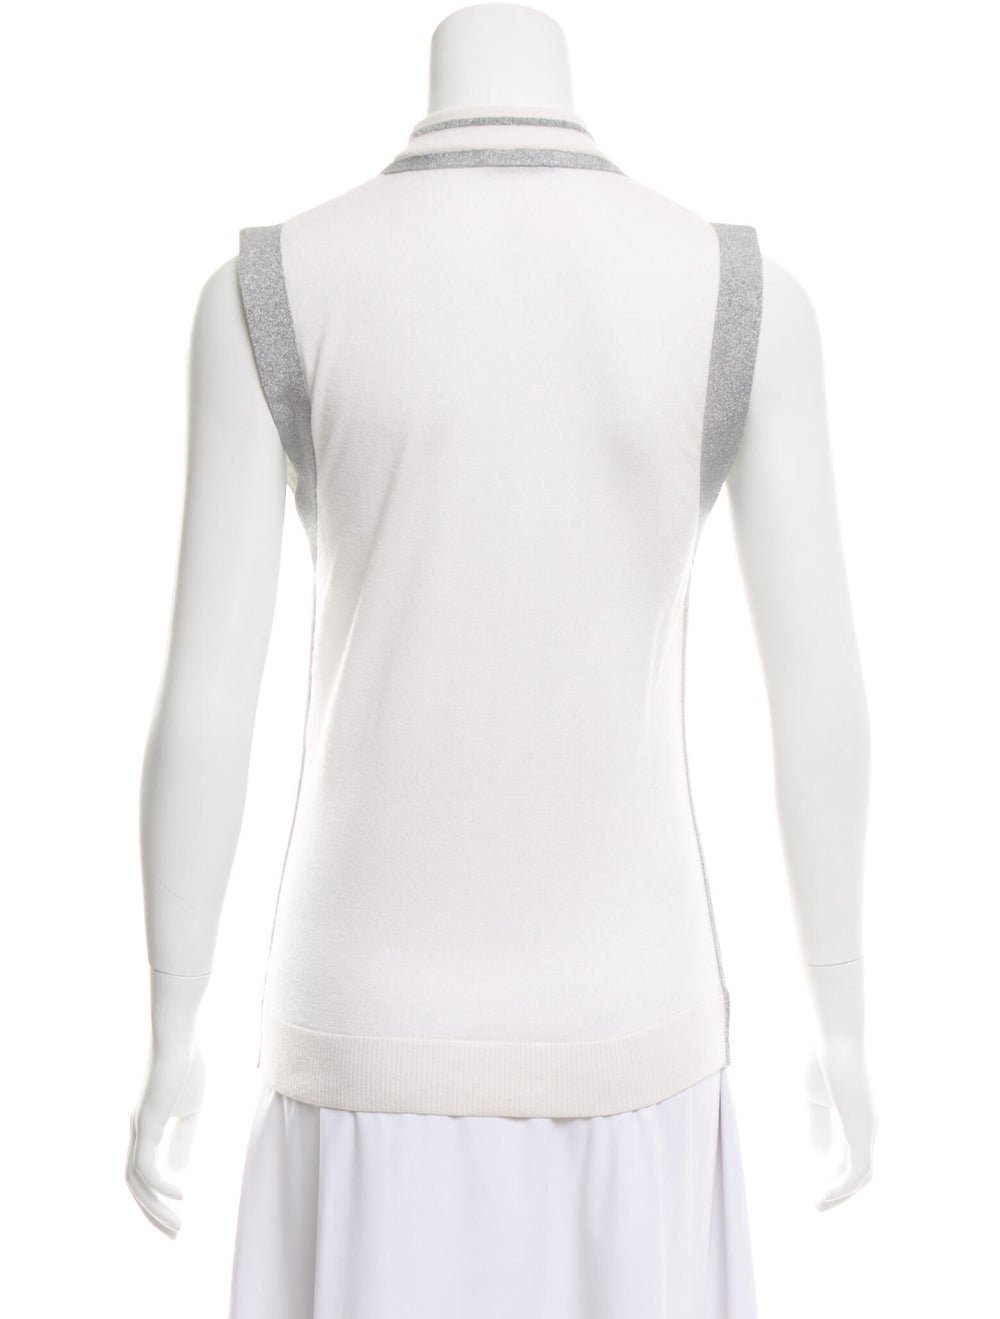 Paco Rabanne Turtleneck Sweater White - image 3